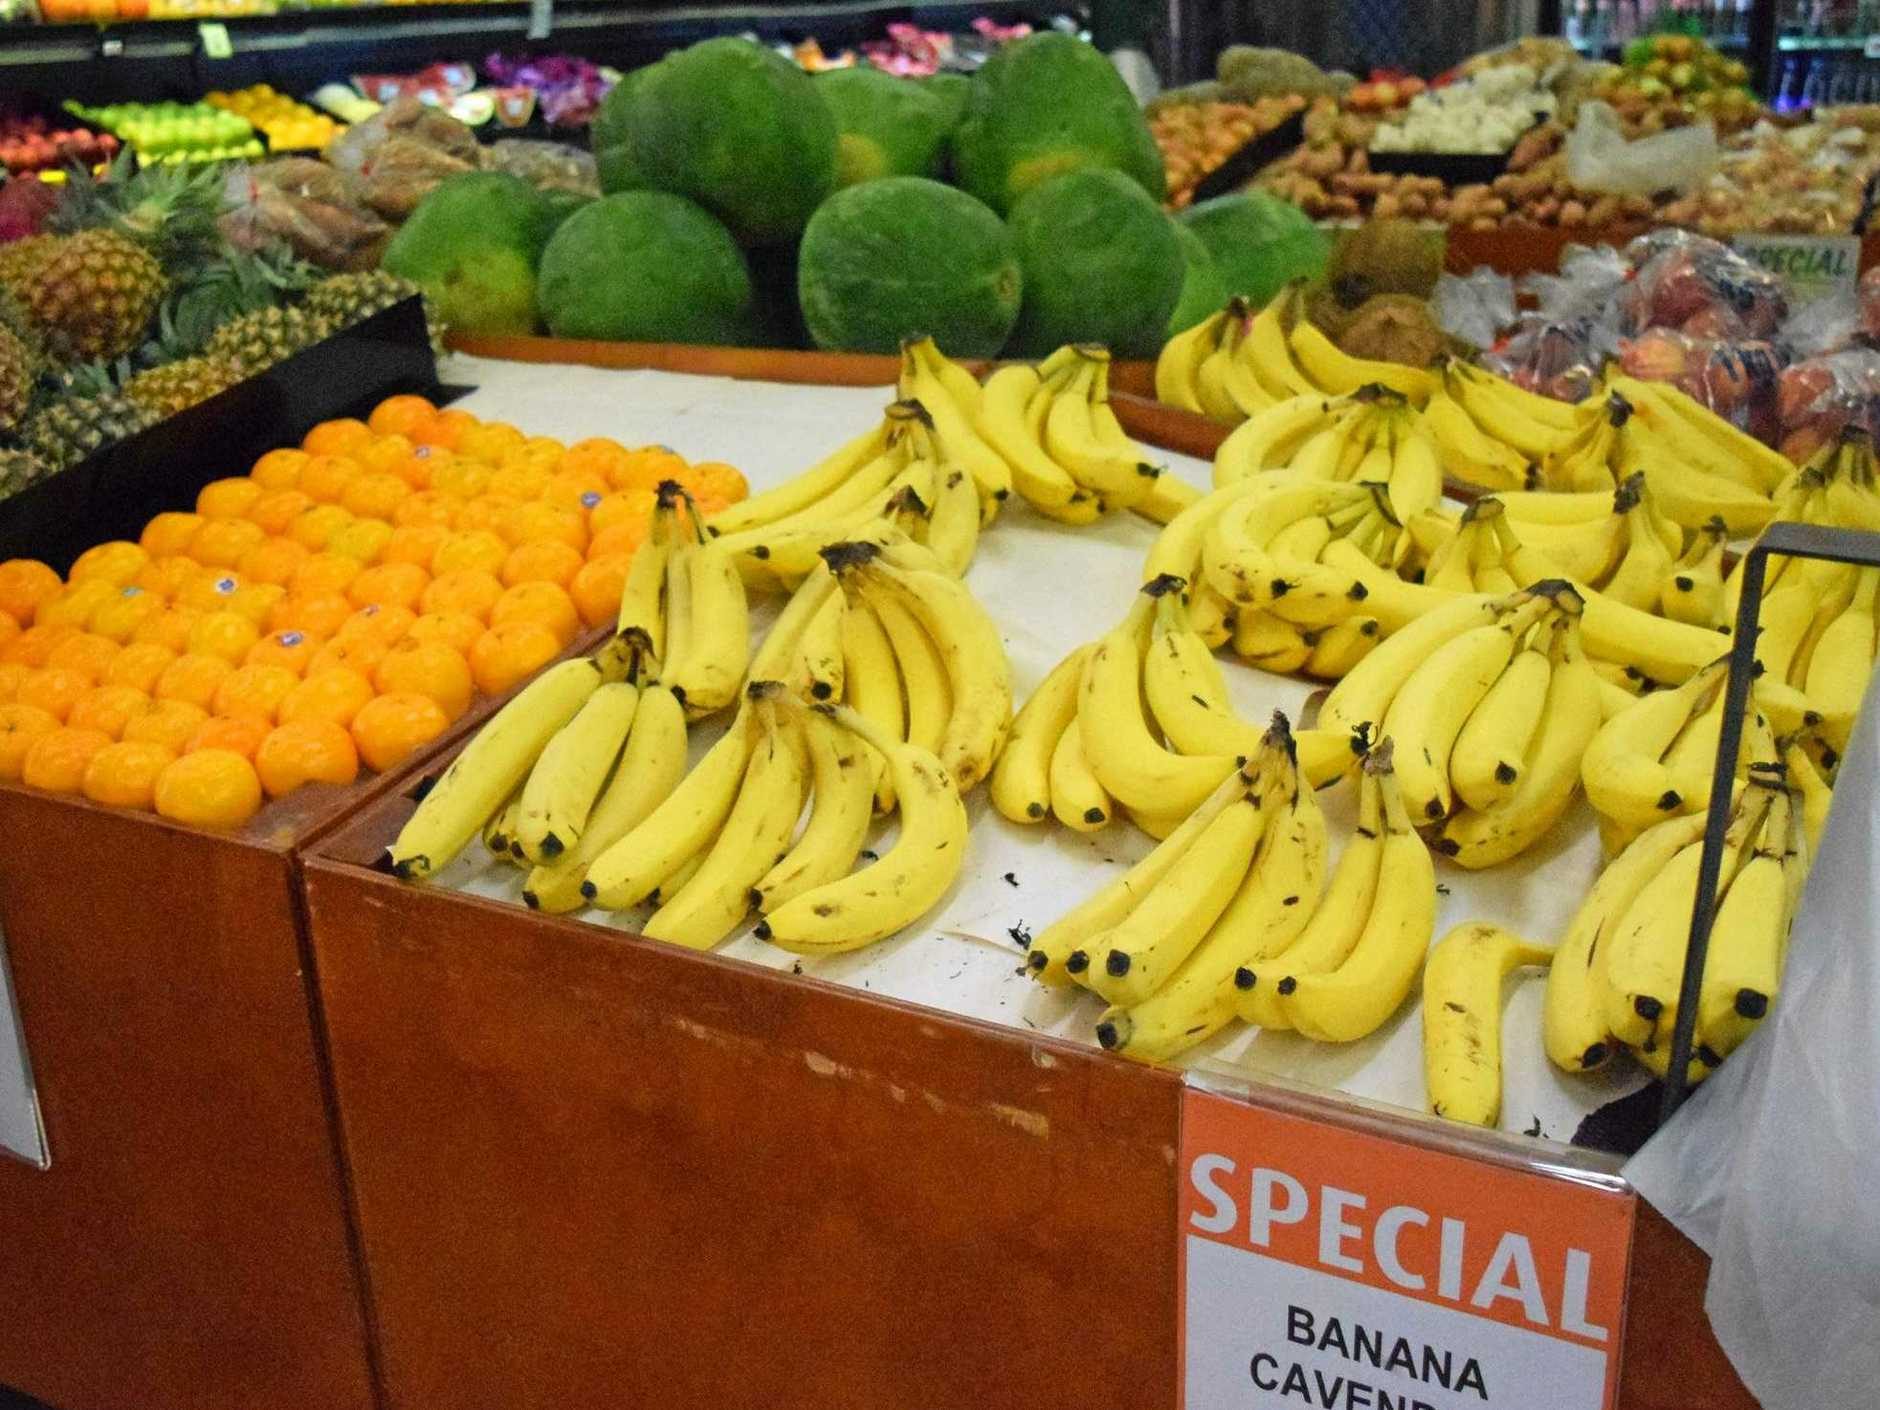 File image of bananas in a supermarket.